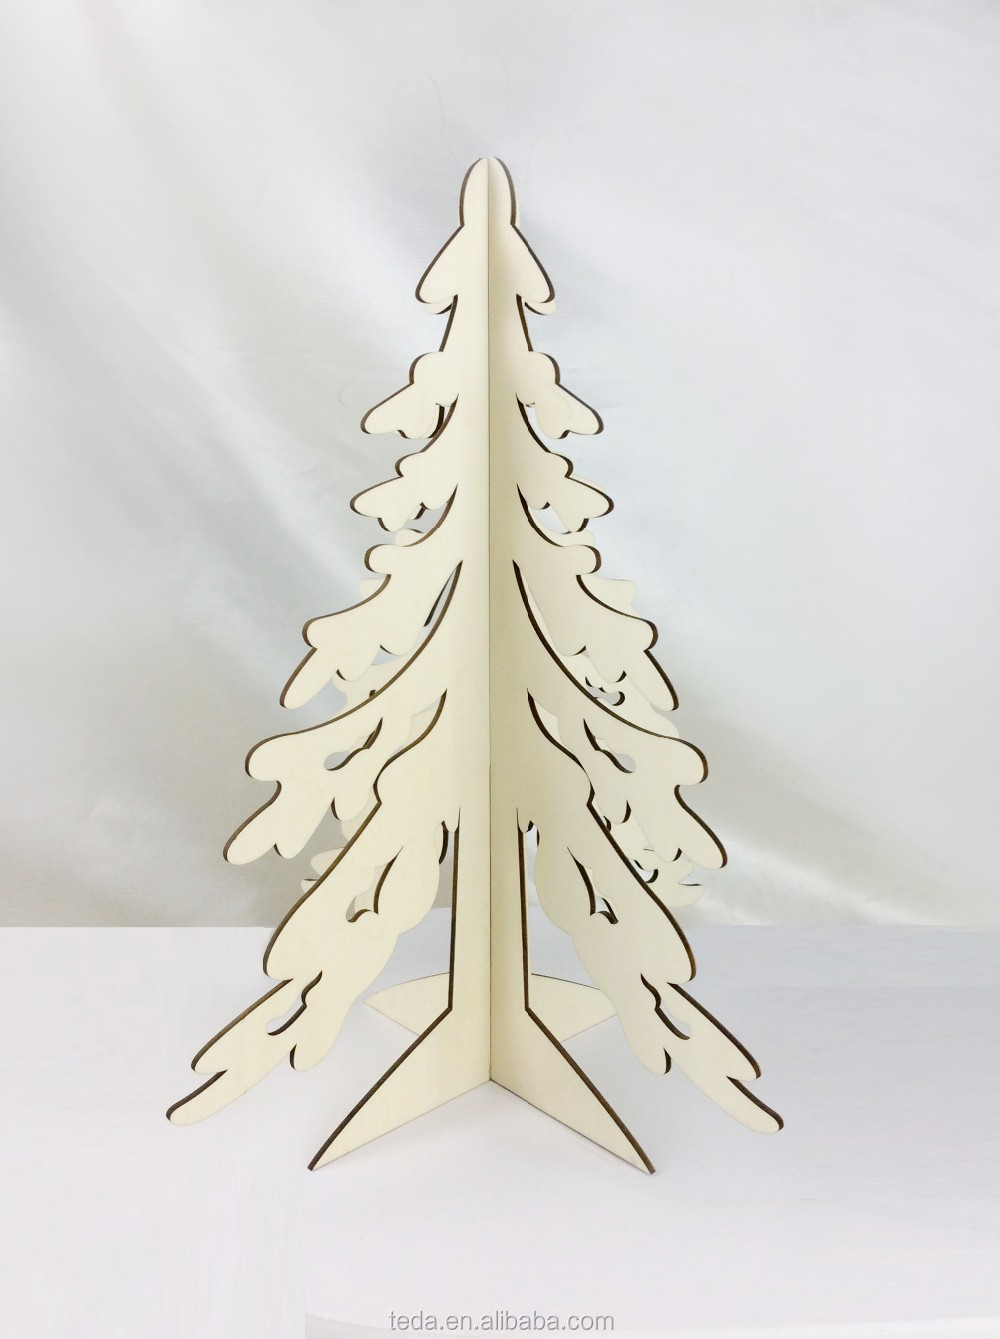 Wooden art mind carft Christmas tree for home and office decoration laser cut and engraving wood craft Christmas treeSD-430 (2)